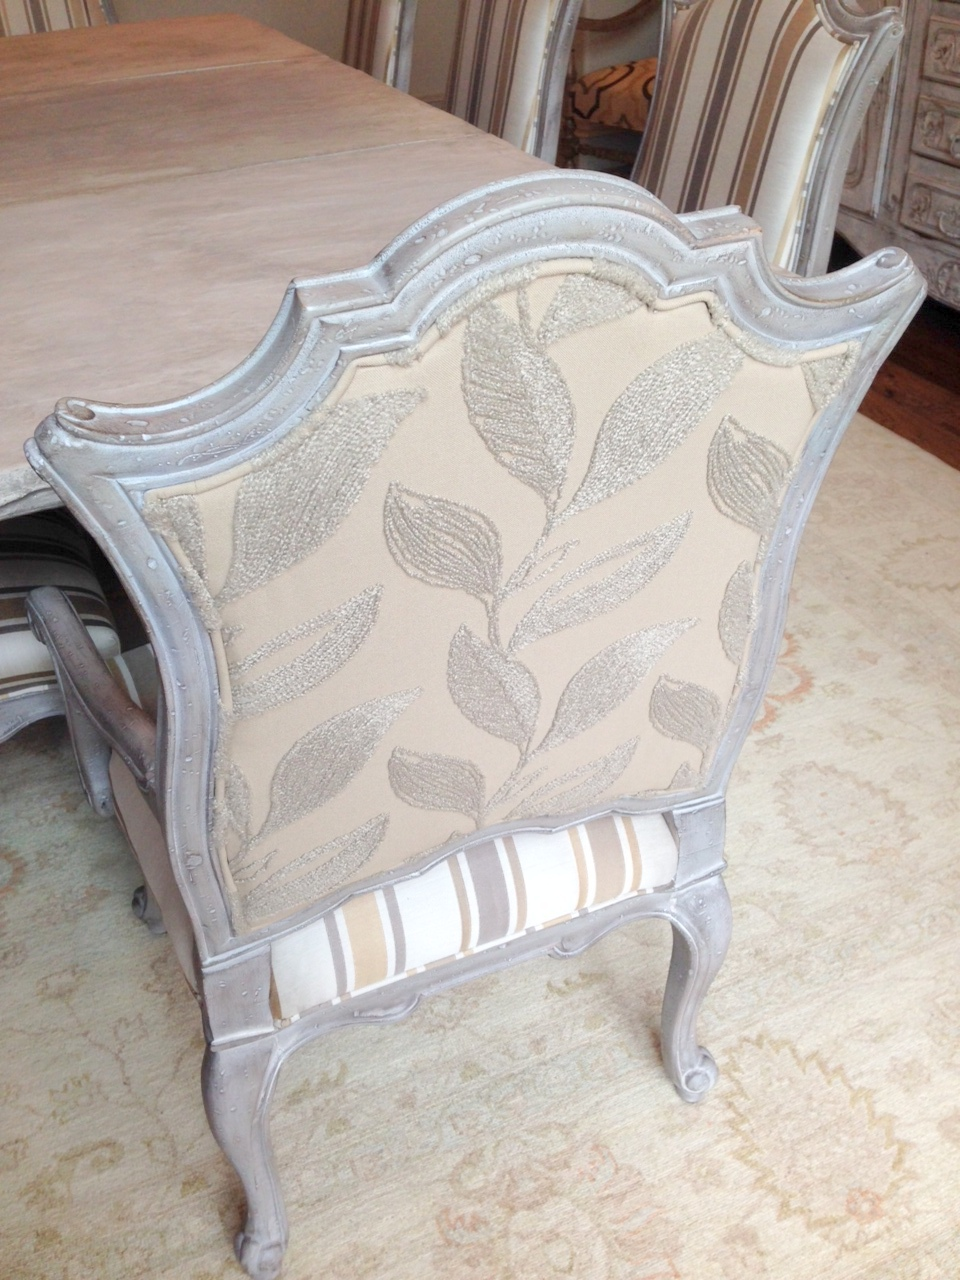 Dining.chairs.providence.design.jpg